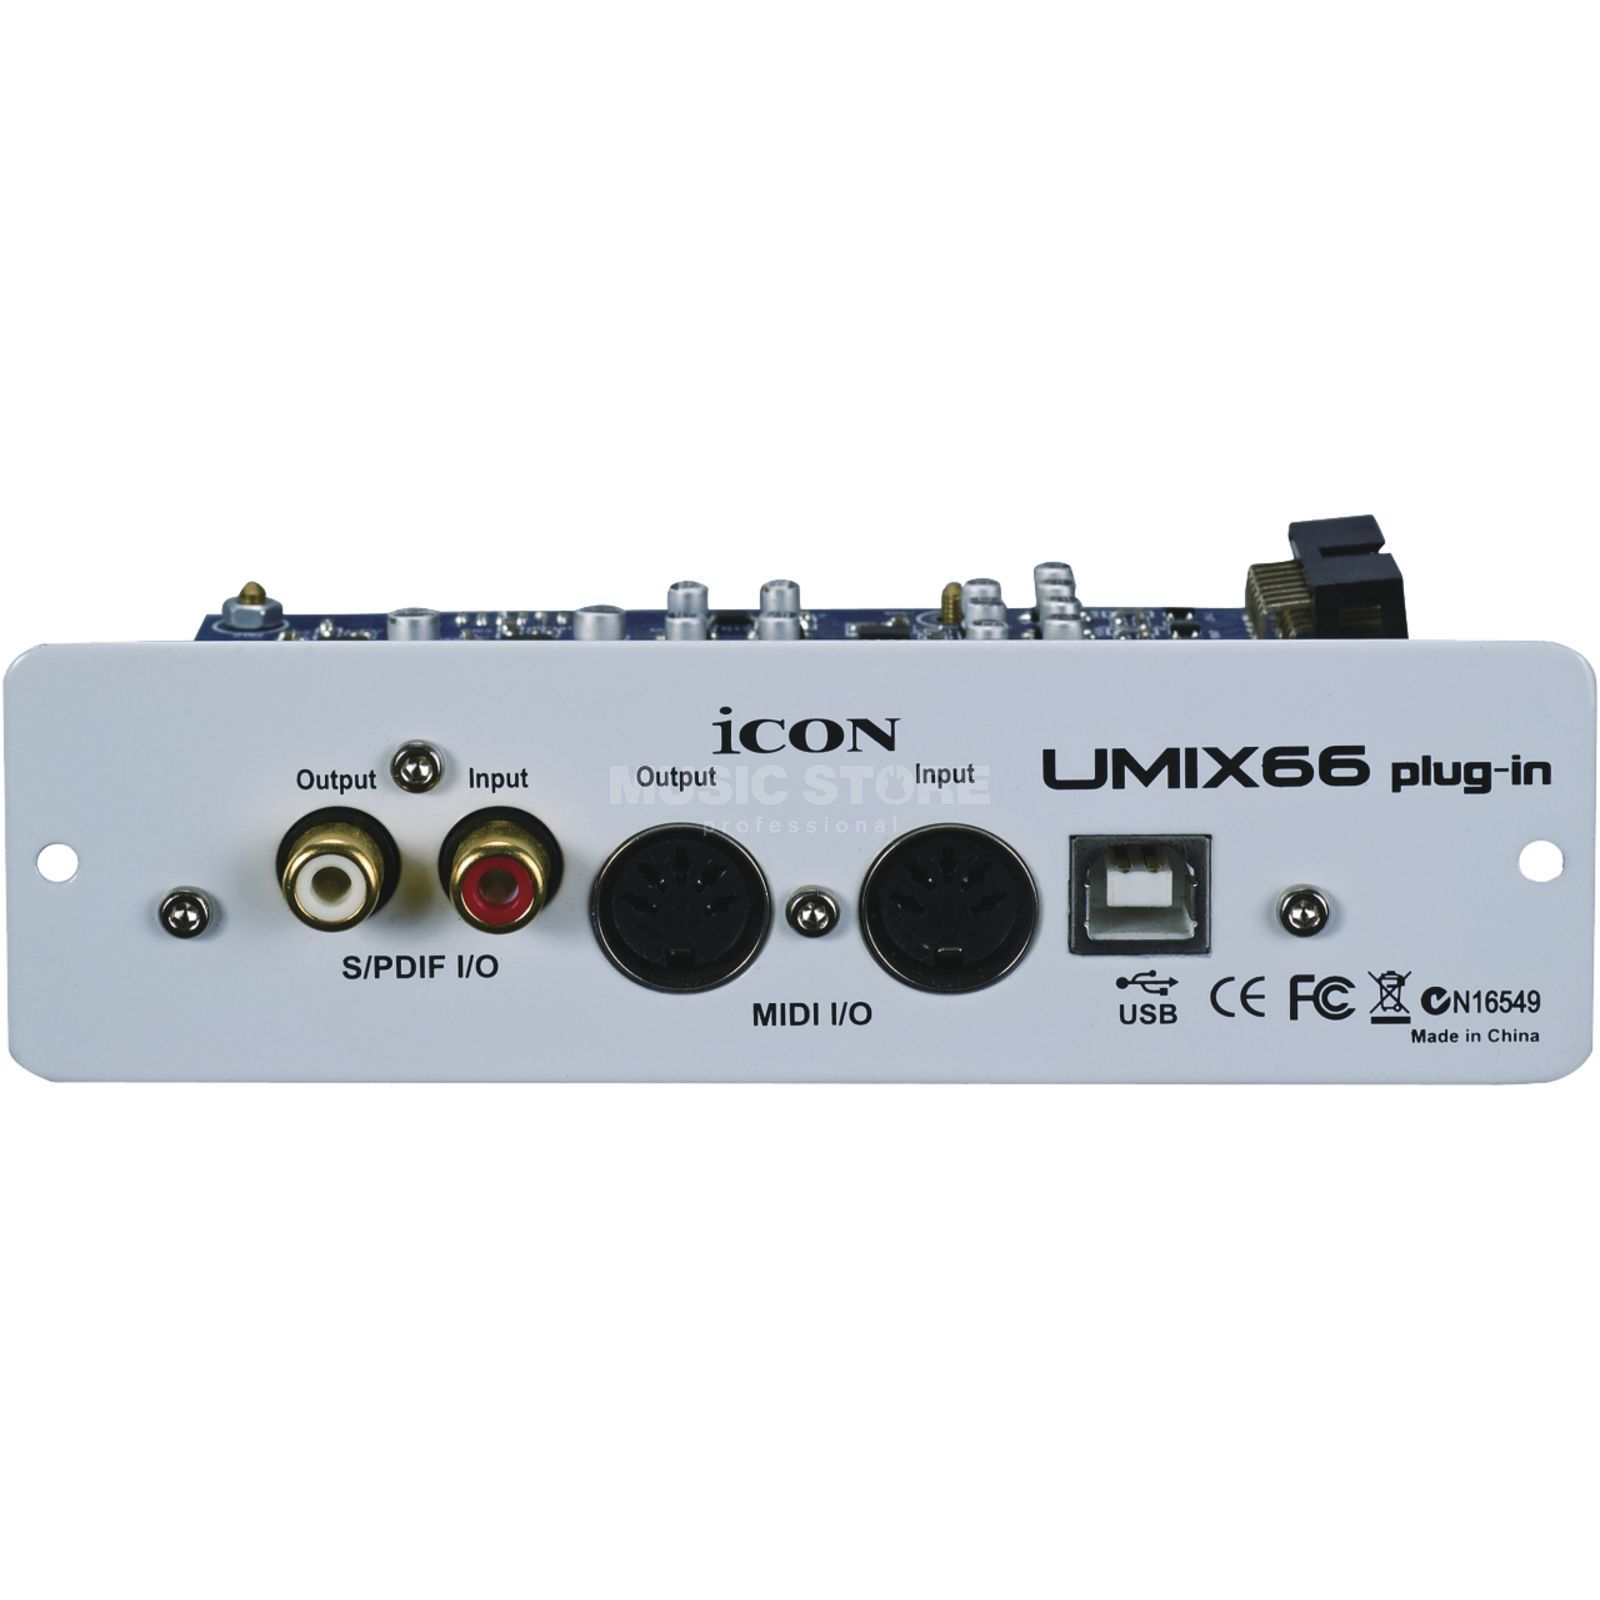 iCON Umix66 USB Expansion Card 6In/6Out + MIDI für Umix Mixer Product Image